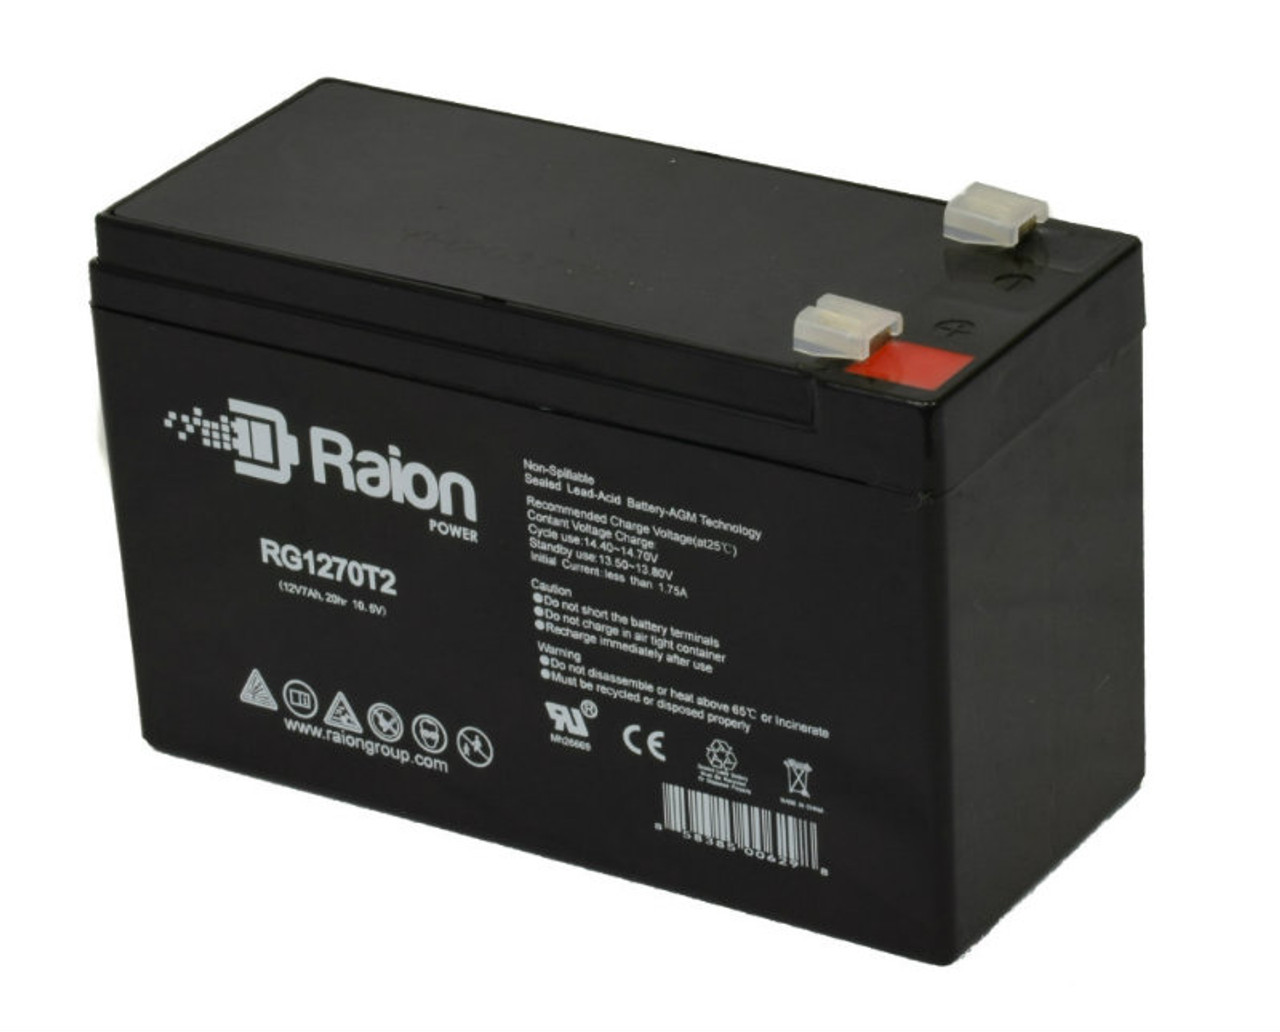 Raion Power RG1270T1 Replacement Battery for CSB Battery GPL-1272-F1